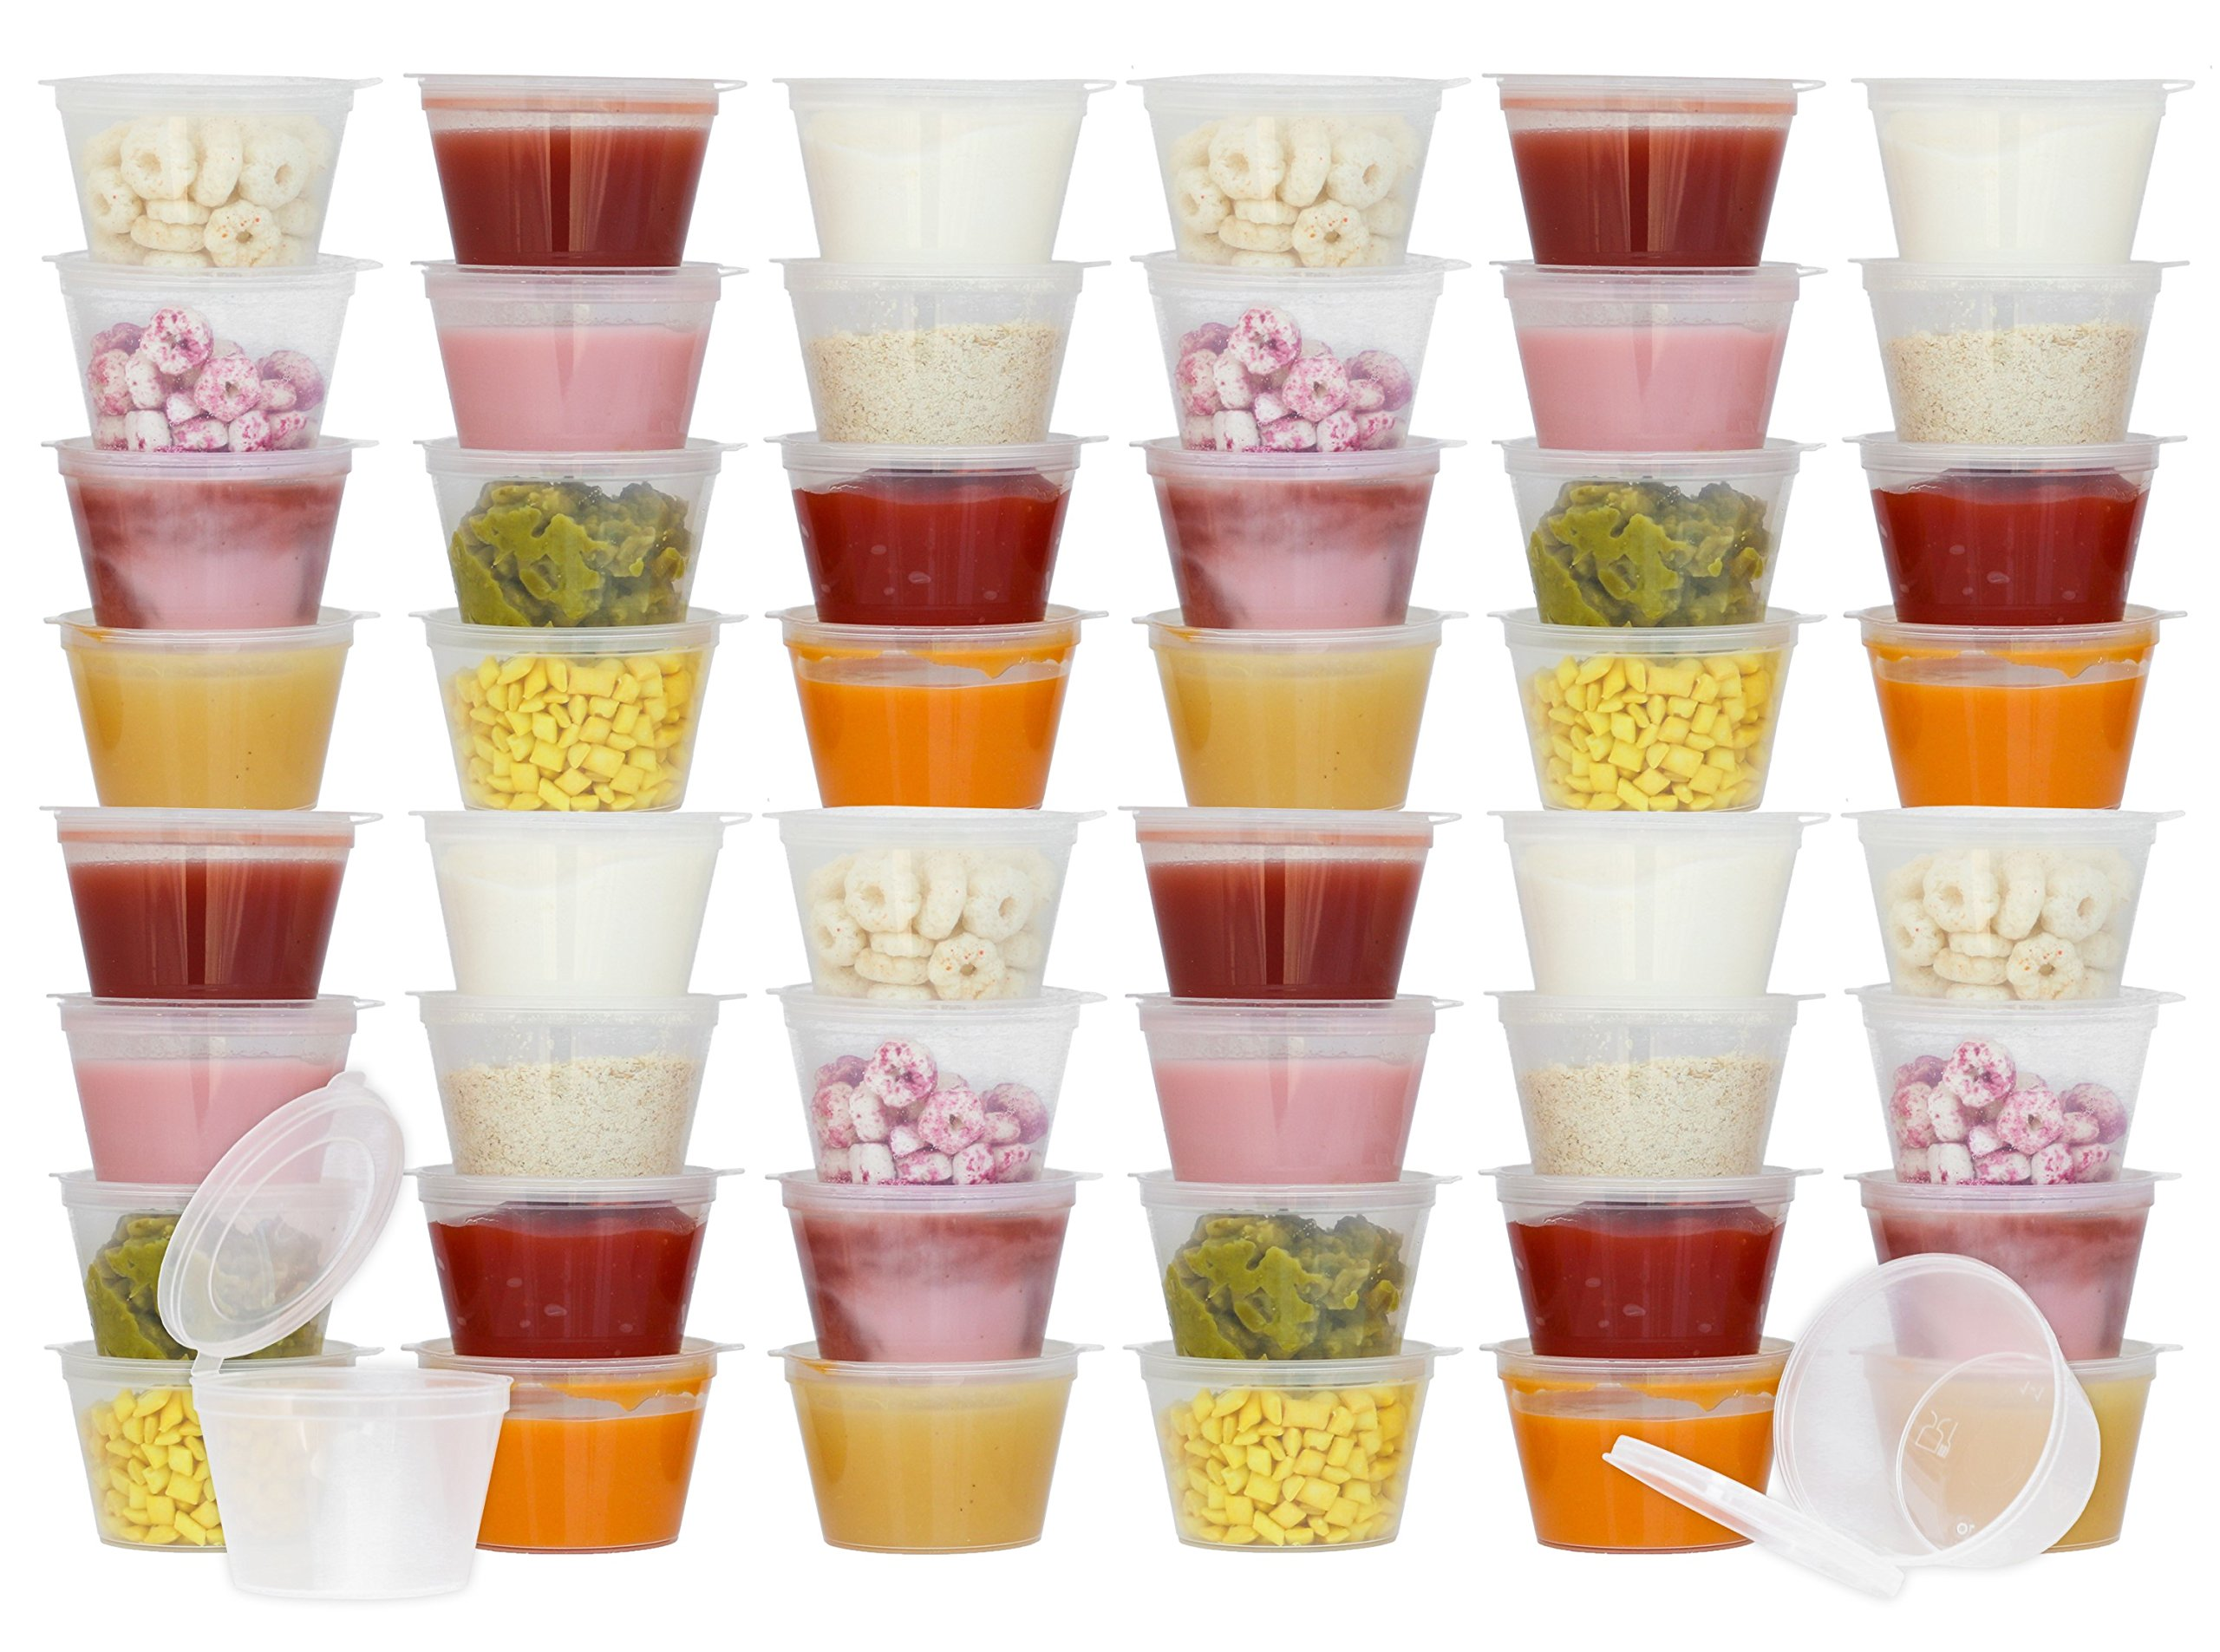 Tovla BPA-Free Baby Food Freezer Storage Containers with Hinged Lids (3 Ounce, 50-Pack) | Leak-Proof | Travel Snack Cups | Store Homemade, Organic Purees | Freezer and Dishwasher Safe